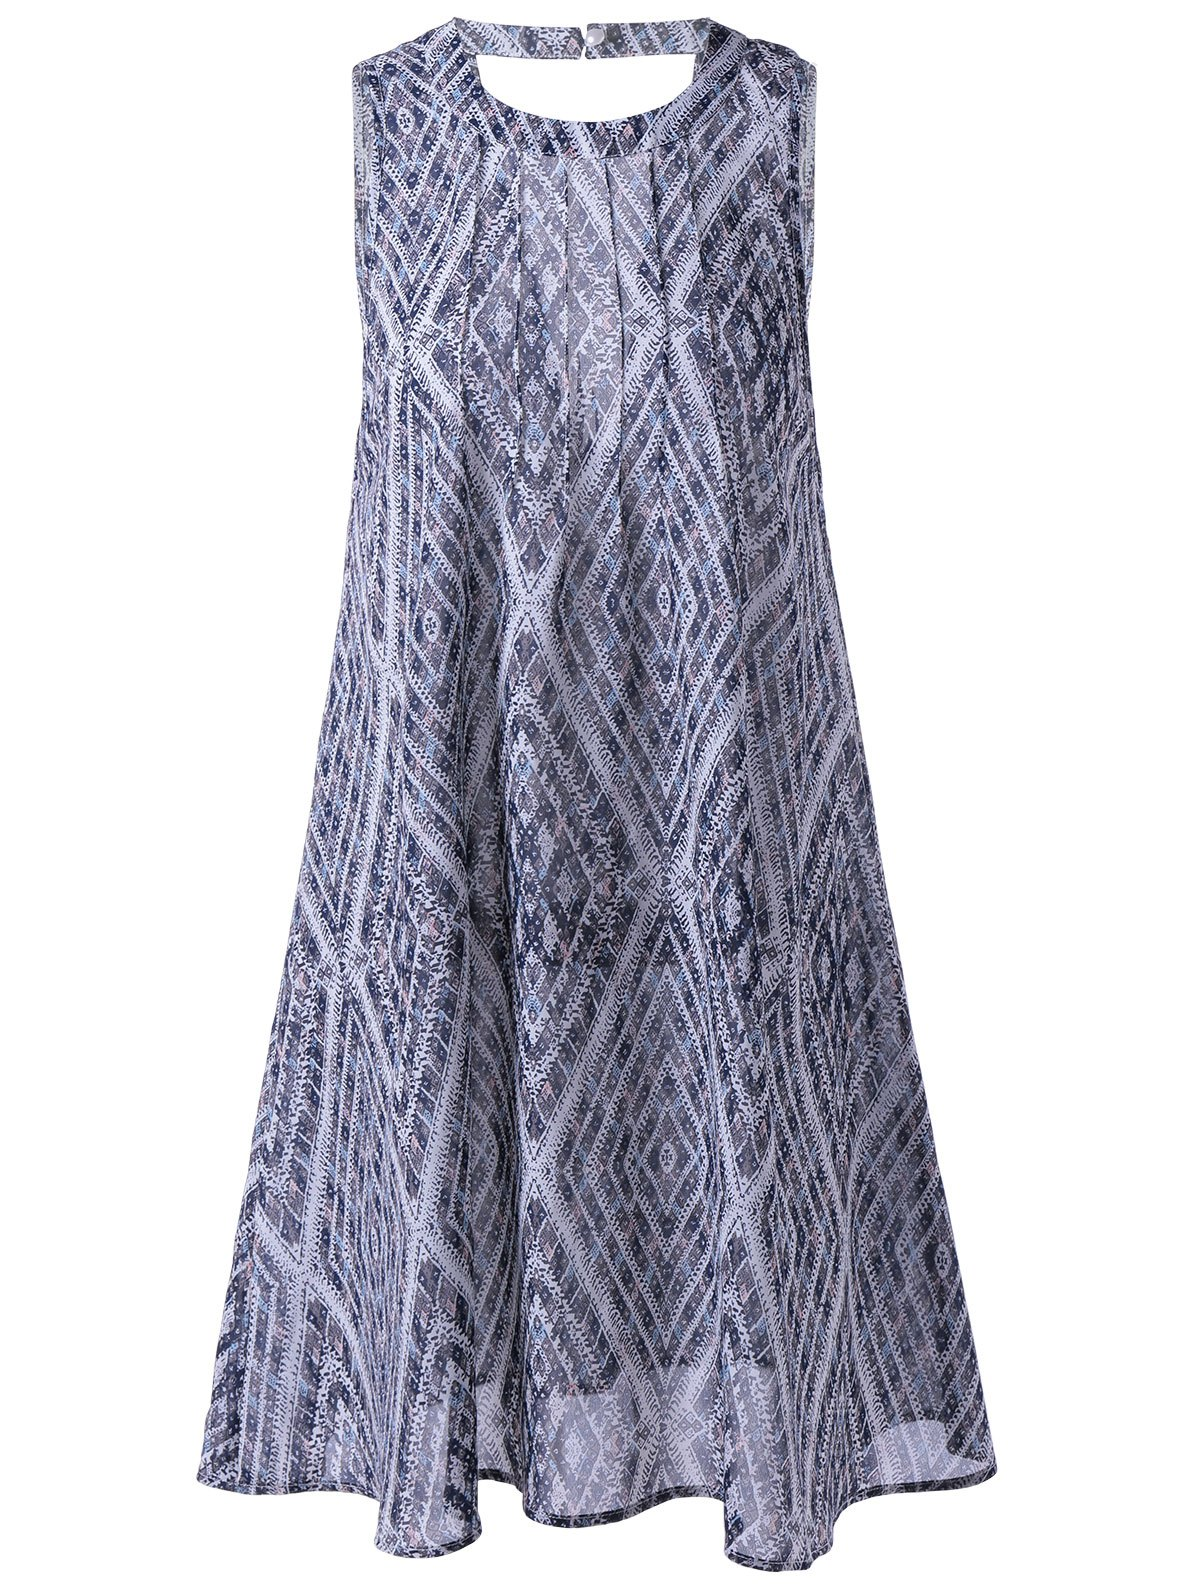 Ethnic Style Women's Loose-Fitting Round Neck Cavern Out Dress